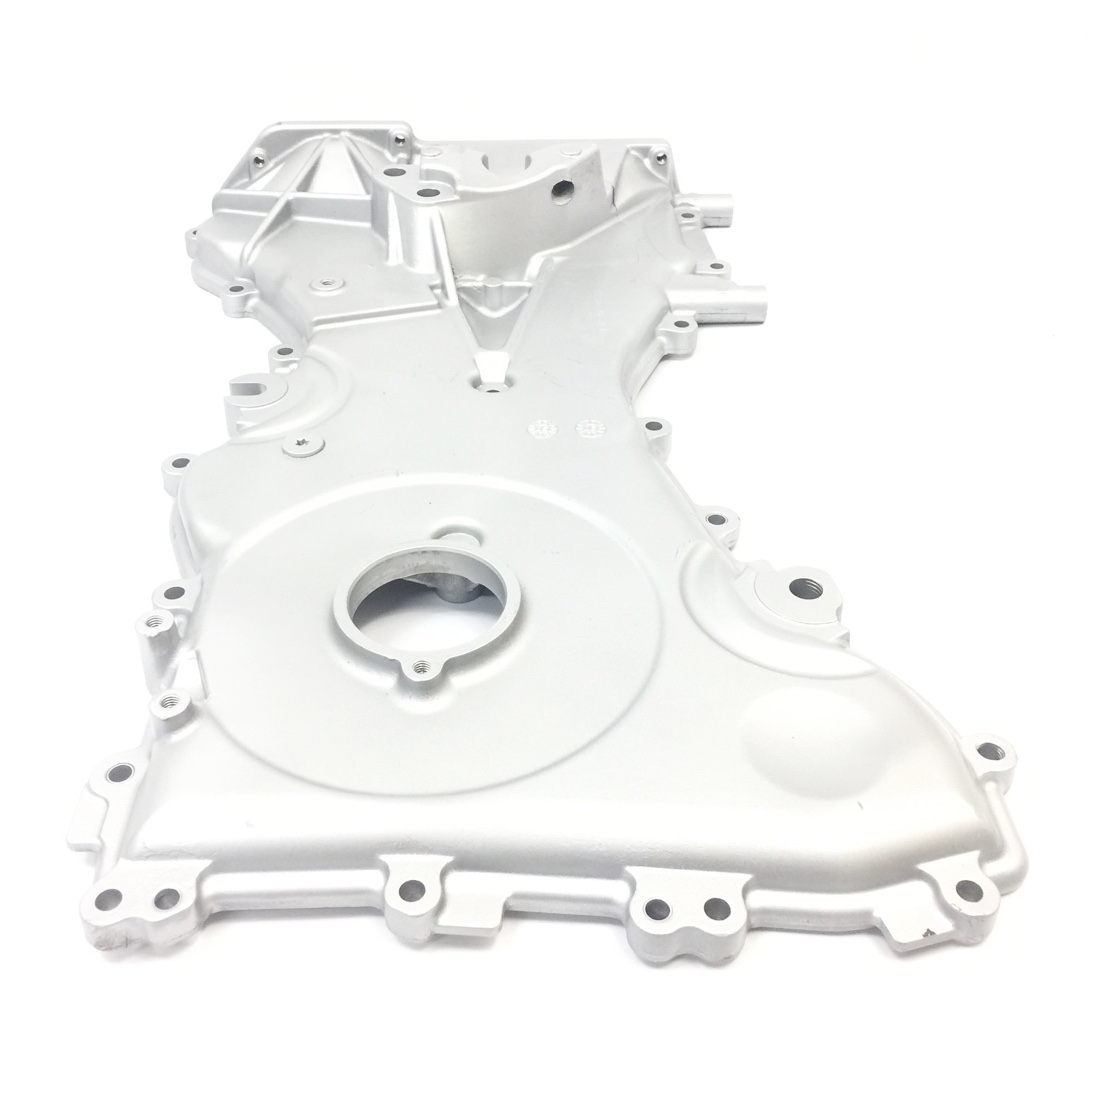 ford 2006 5 4 timing chain tensioners ford focus timing chain replacement 2 3l timing chain cover 03 08 ford escape focus mariner